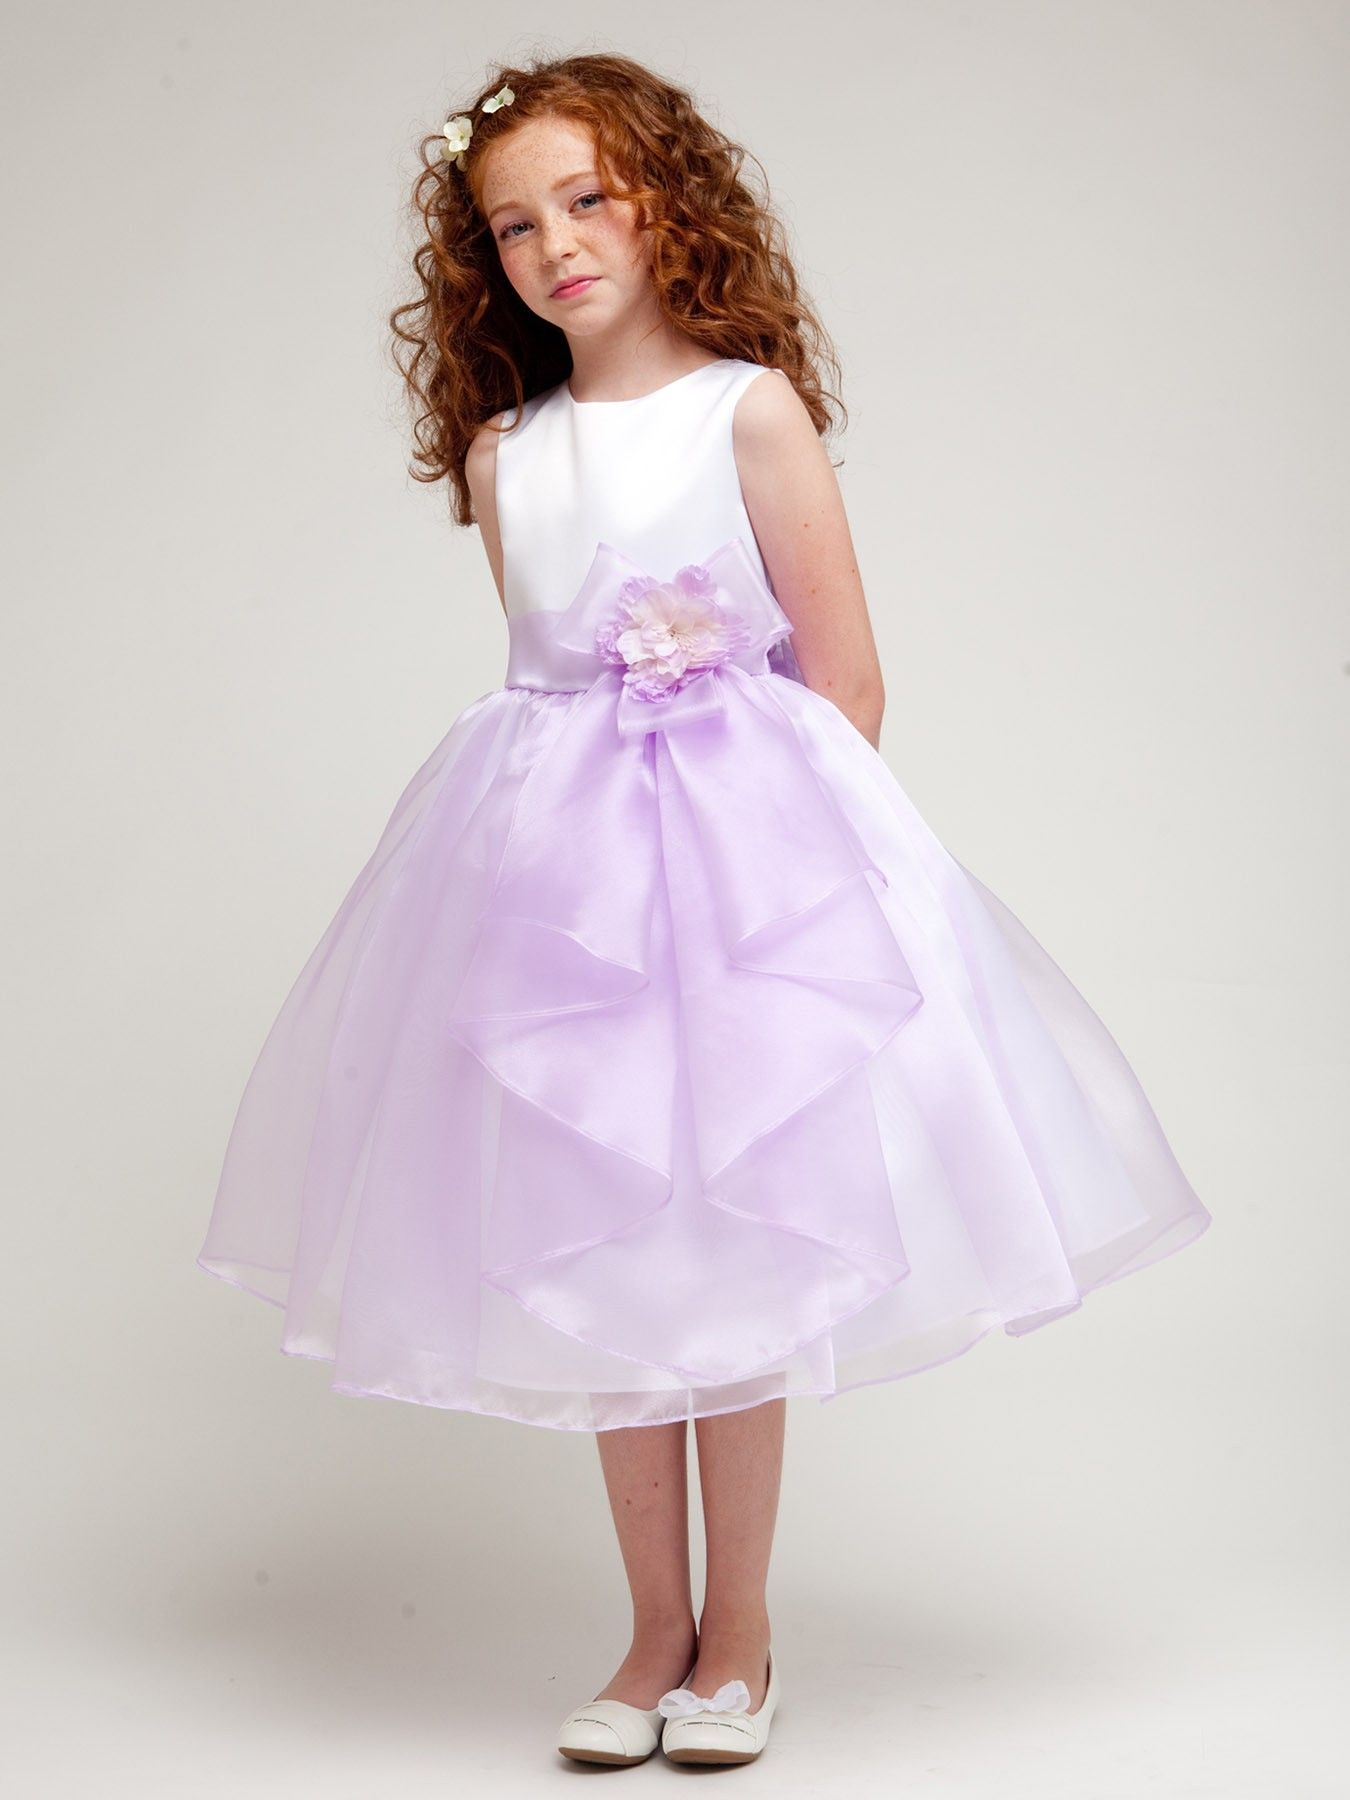 437122b77b71 White Lilac Layered Organza Ruffle Skirt Flower Girl Dress (Sizes ...